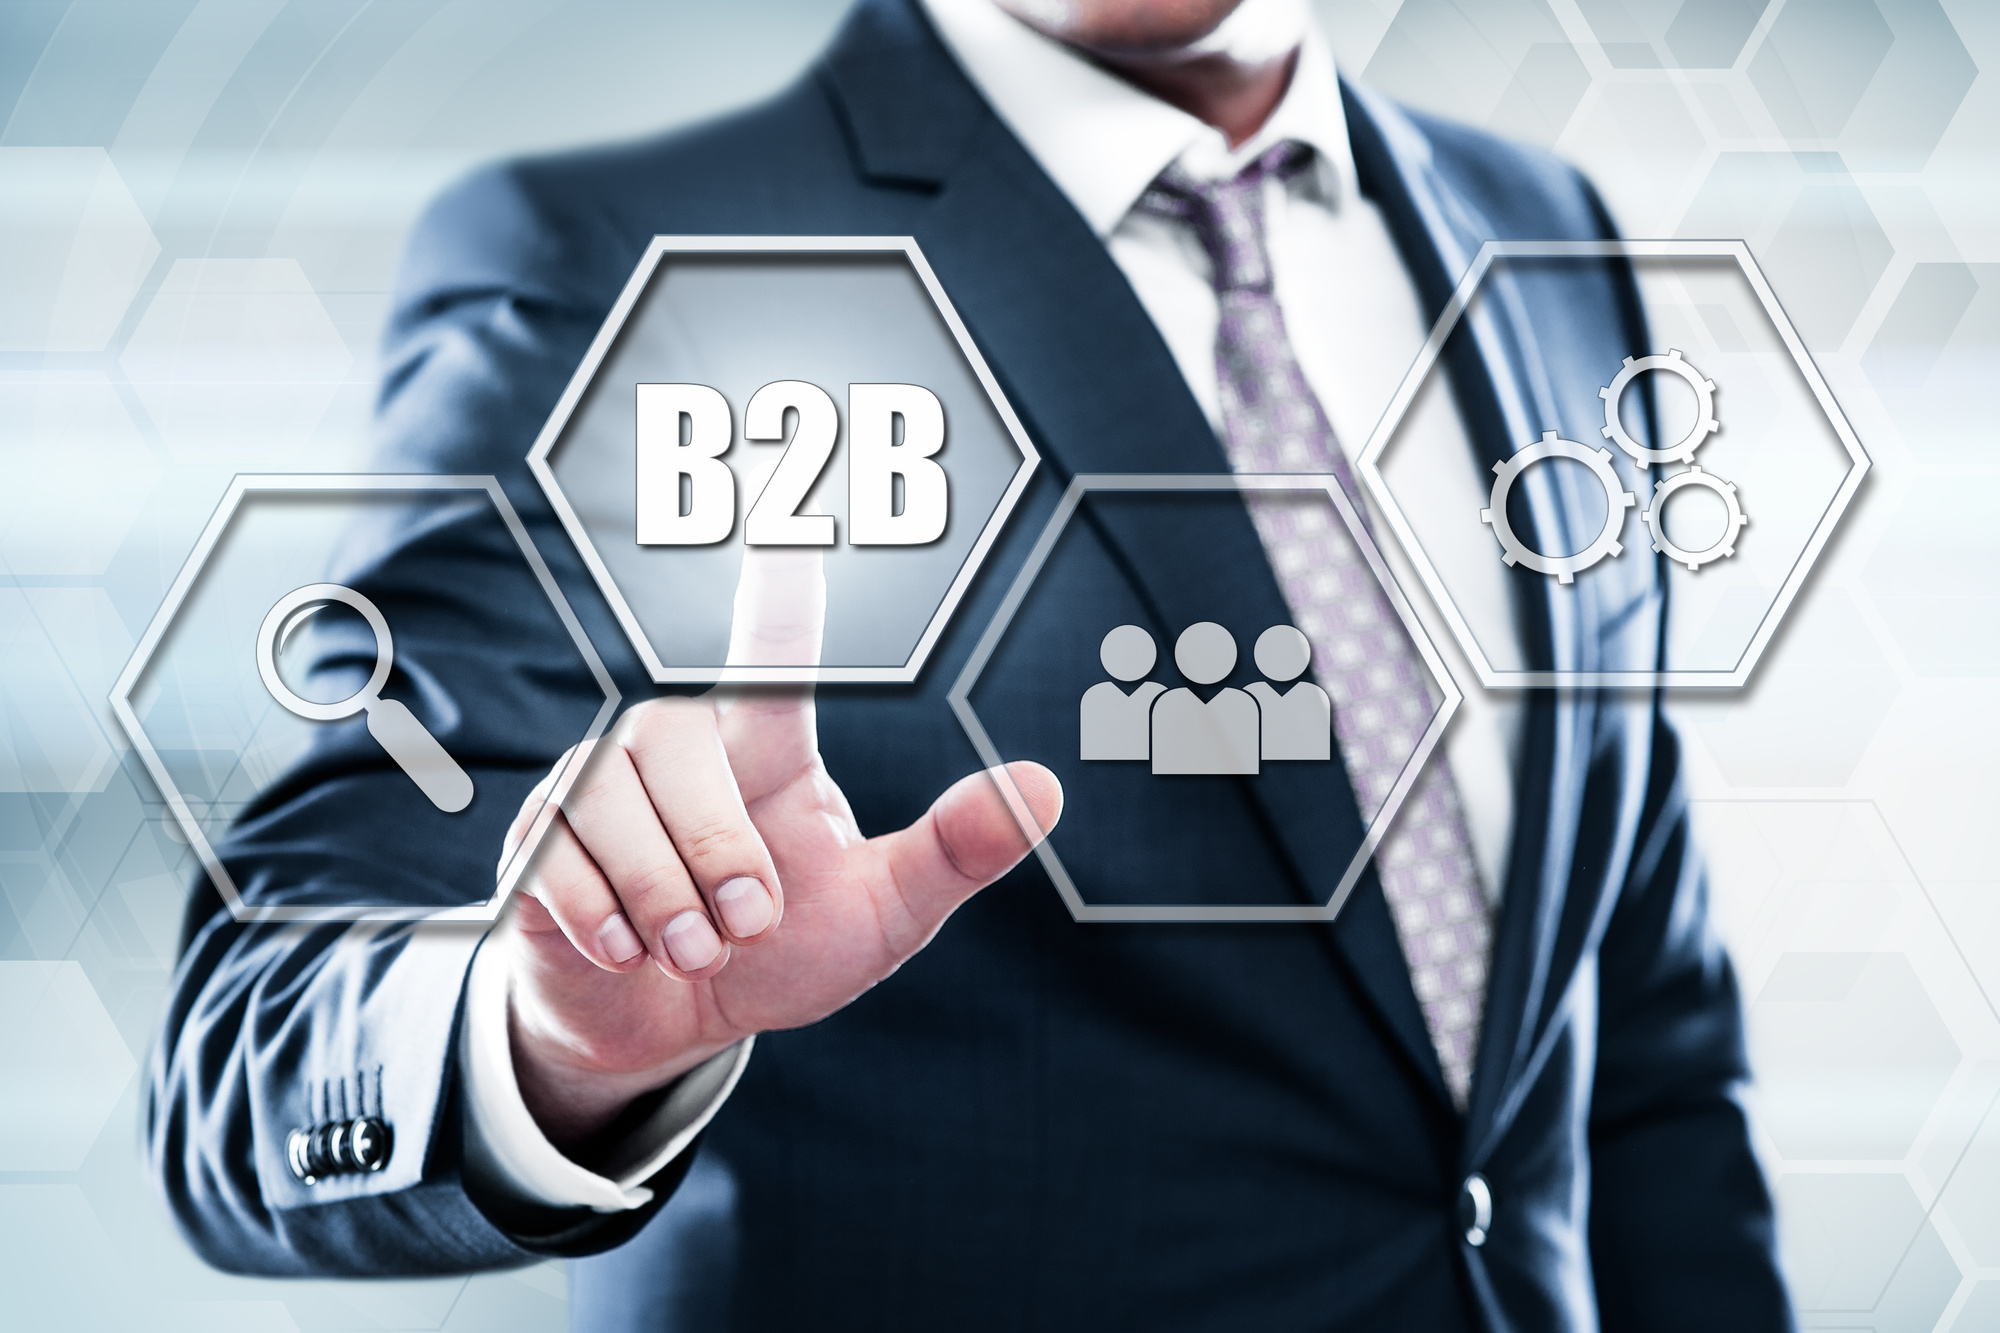 Business, technology, internet concept on hexagons and transparent honeycomb background. Businessman pressing button on touch screen interface and select b2b